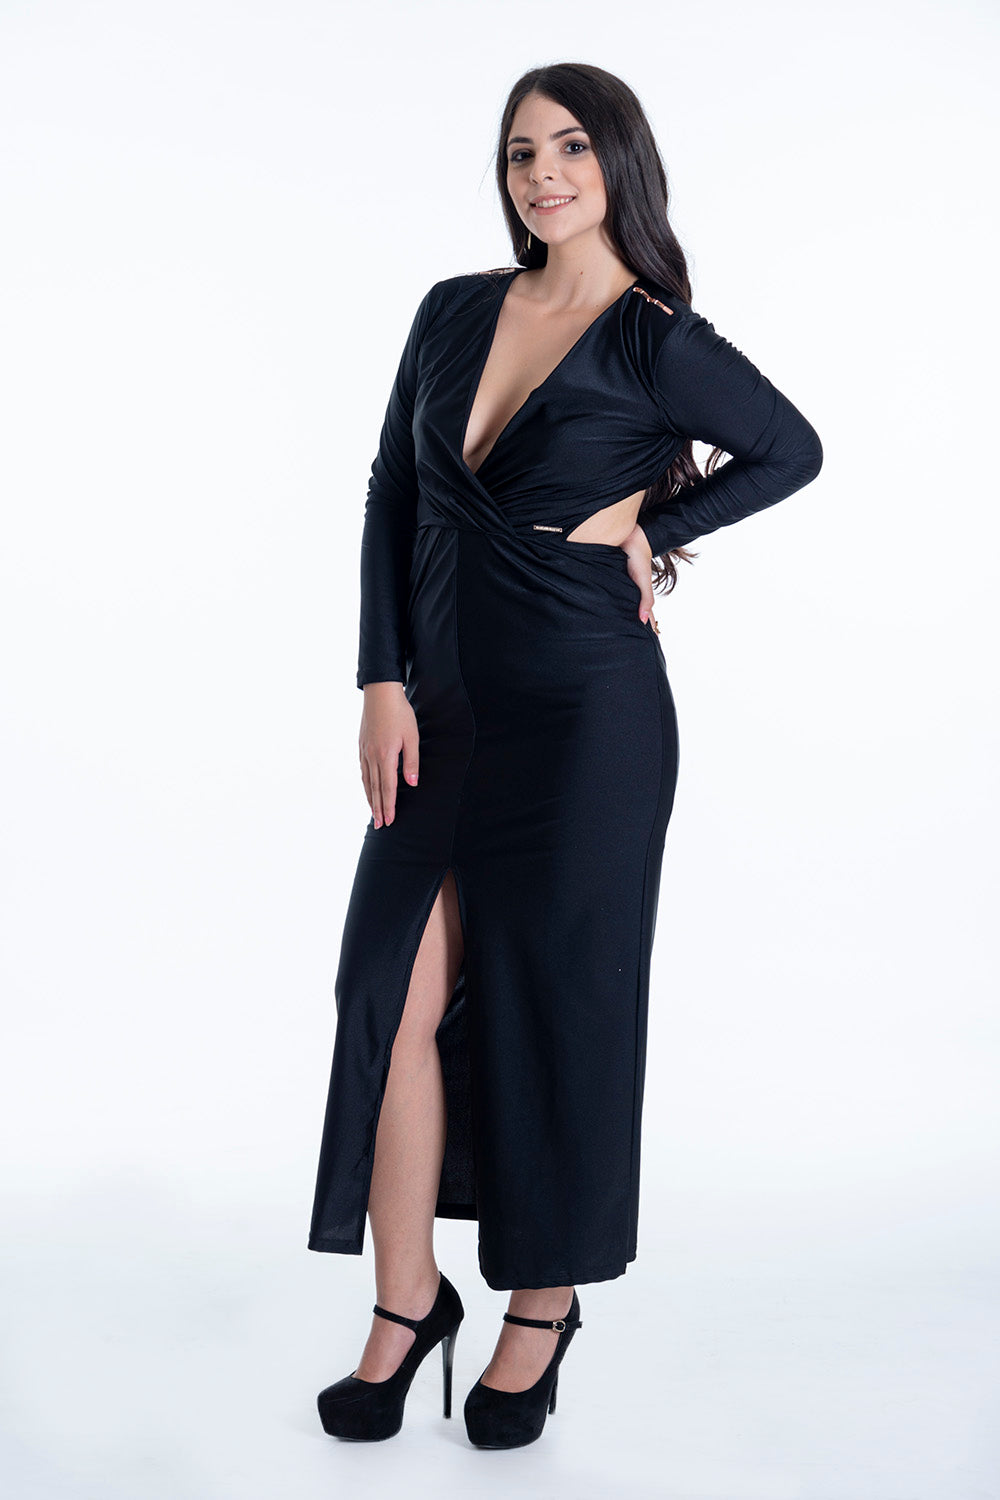 Hellen Barret dress with cut waist details with front split